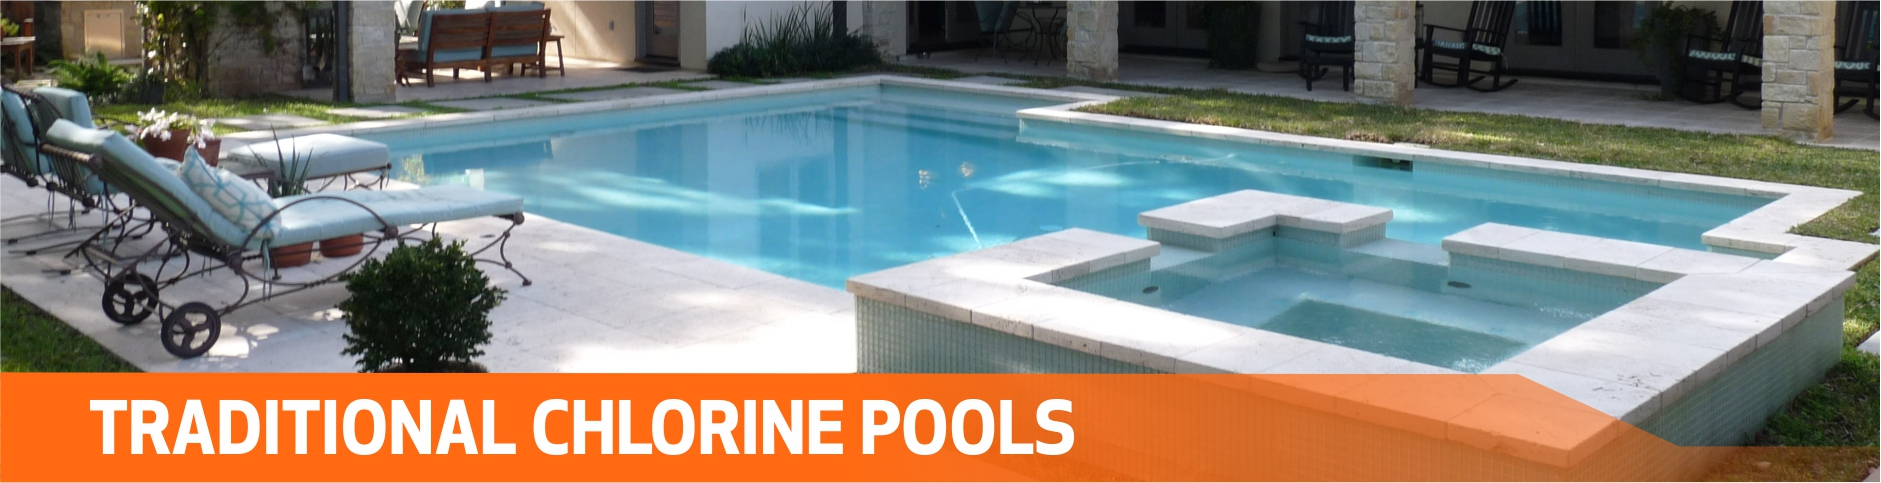 Traditional Chlorine Pools